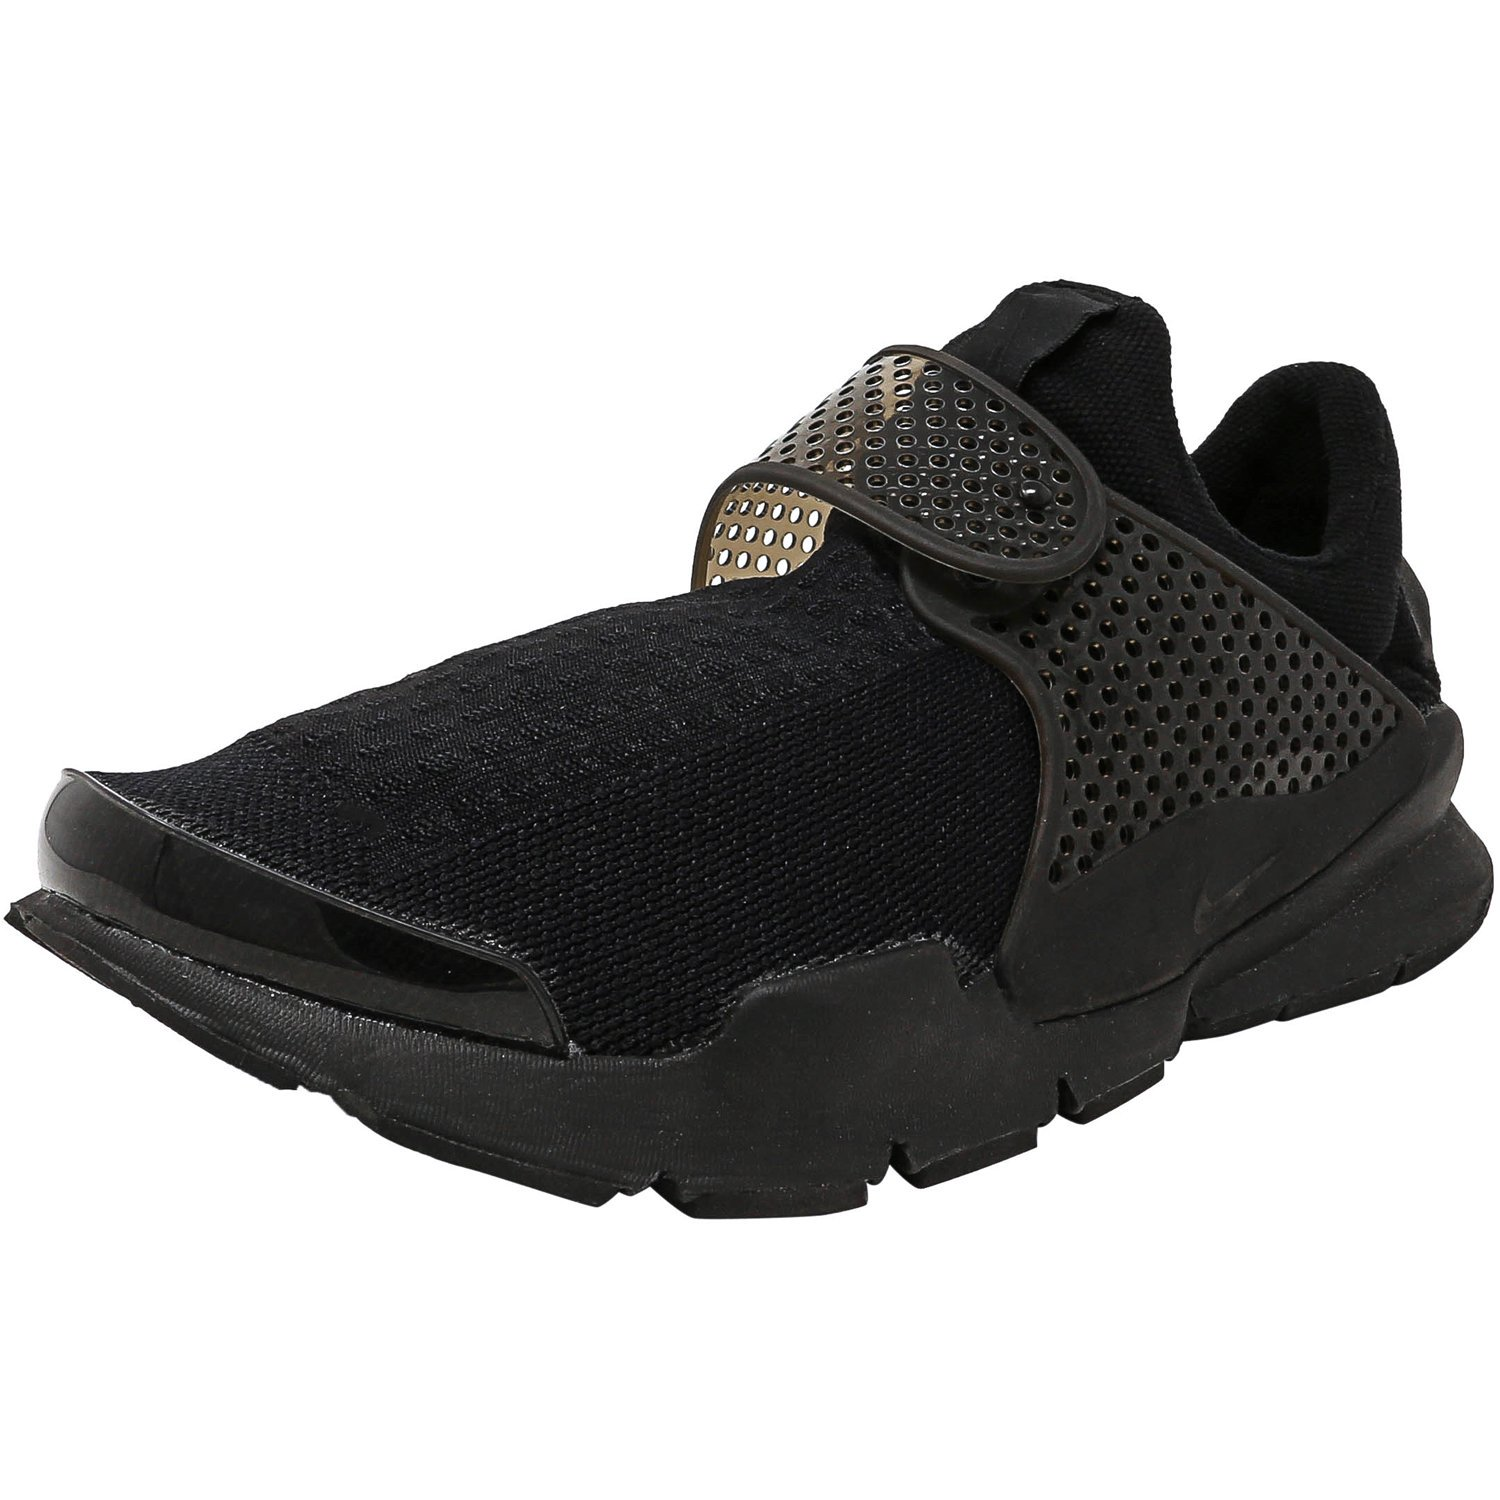 check out f5114 eaa77 Nike Men's Sock Dart Midnight Navy / Black Ankle-High Running Shoe - 12M